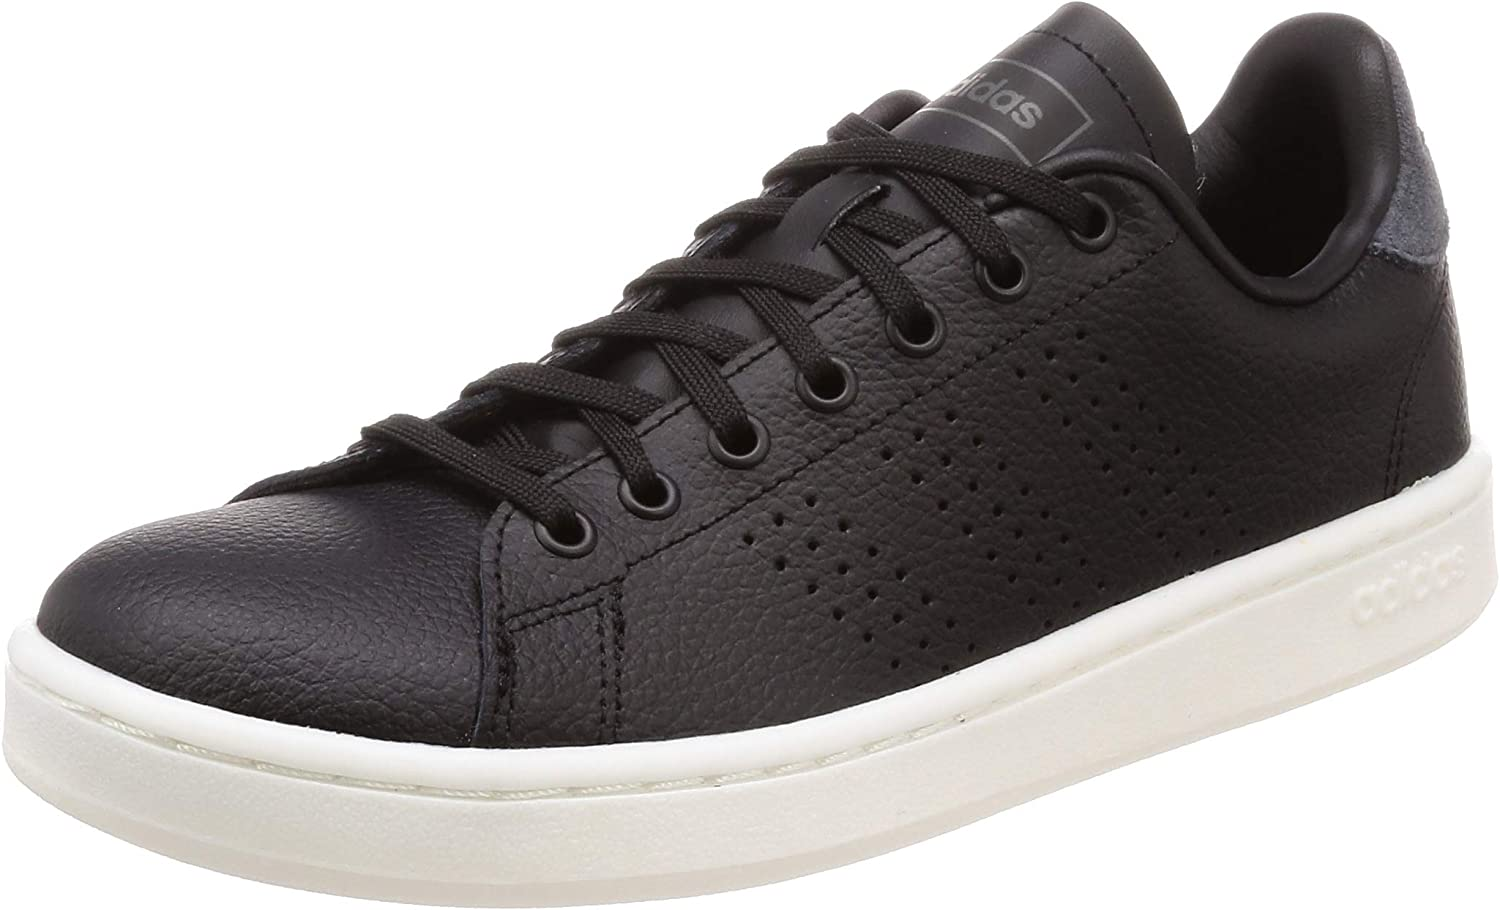 Adidas core F36468 Sneakers Man Black 45-1